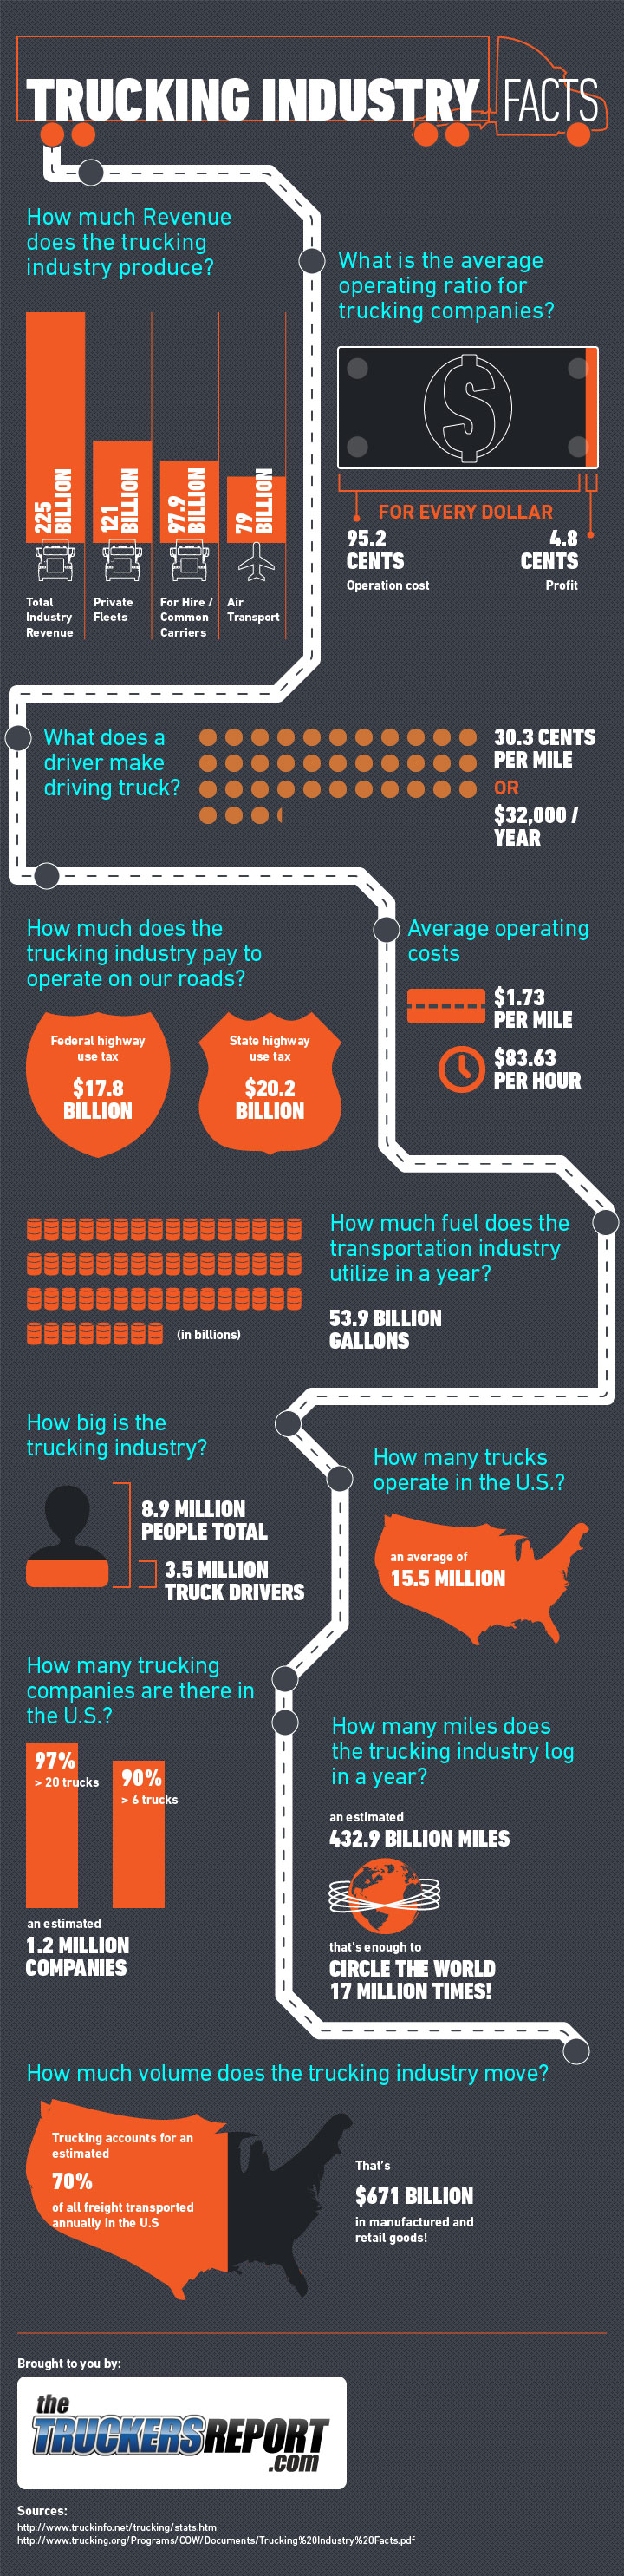 Trucking Industry Facts and Trends